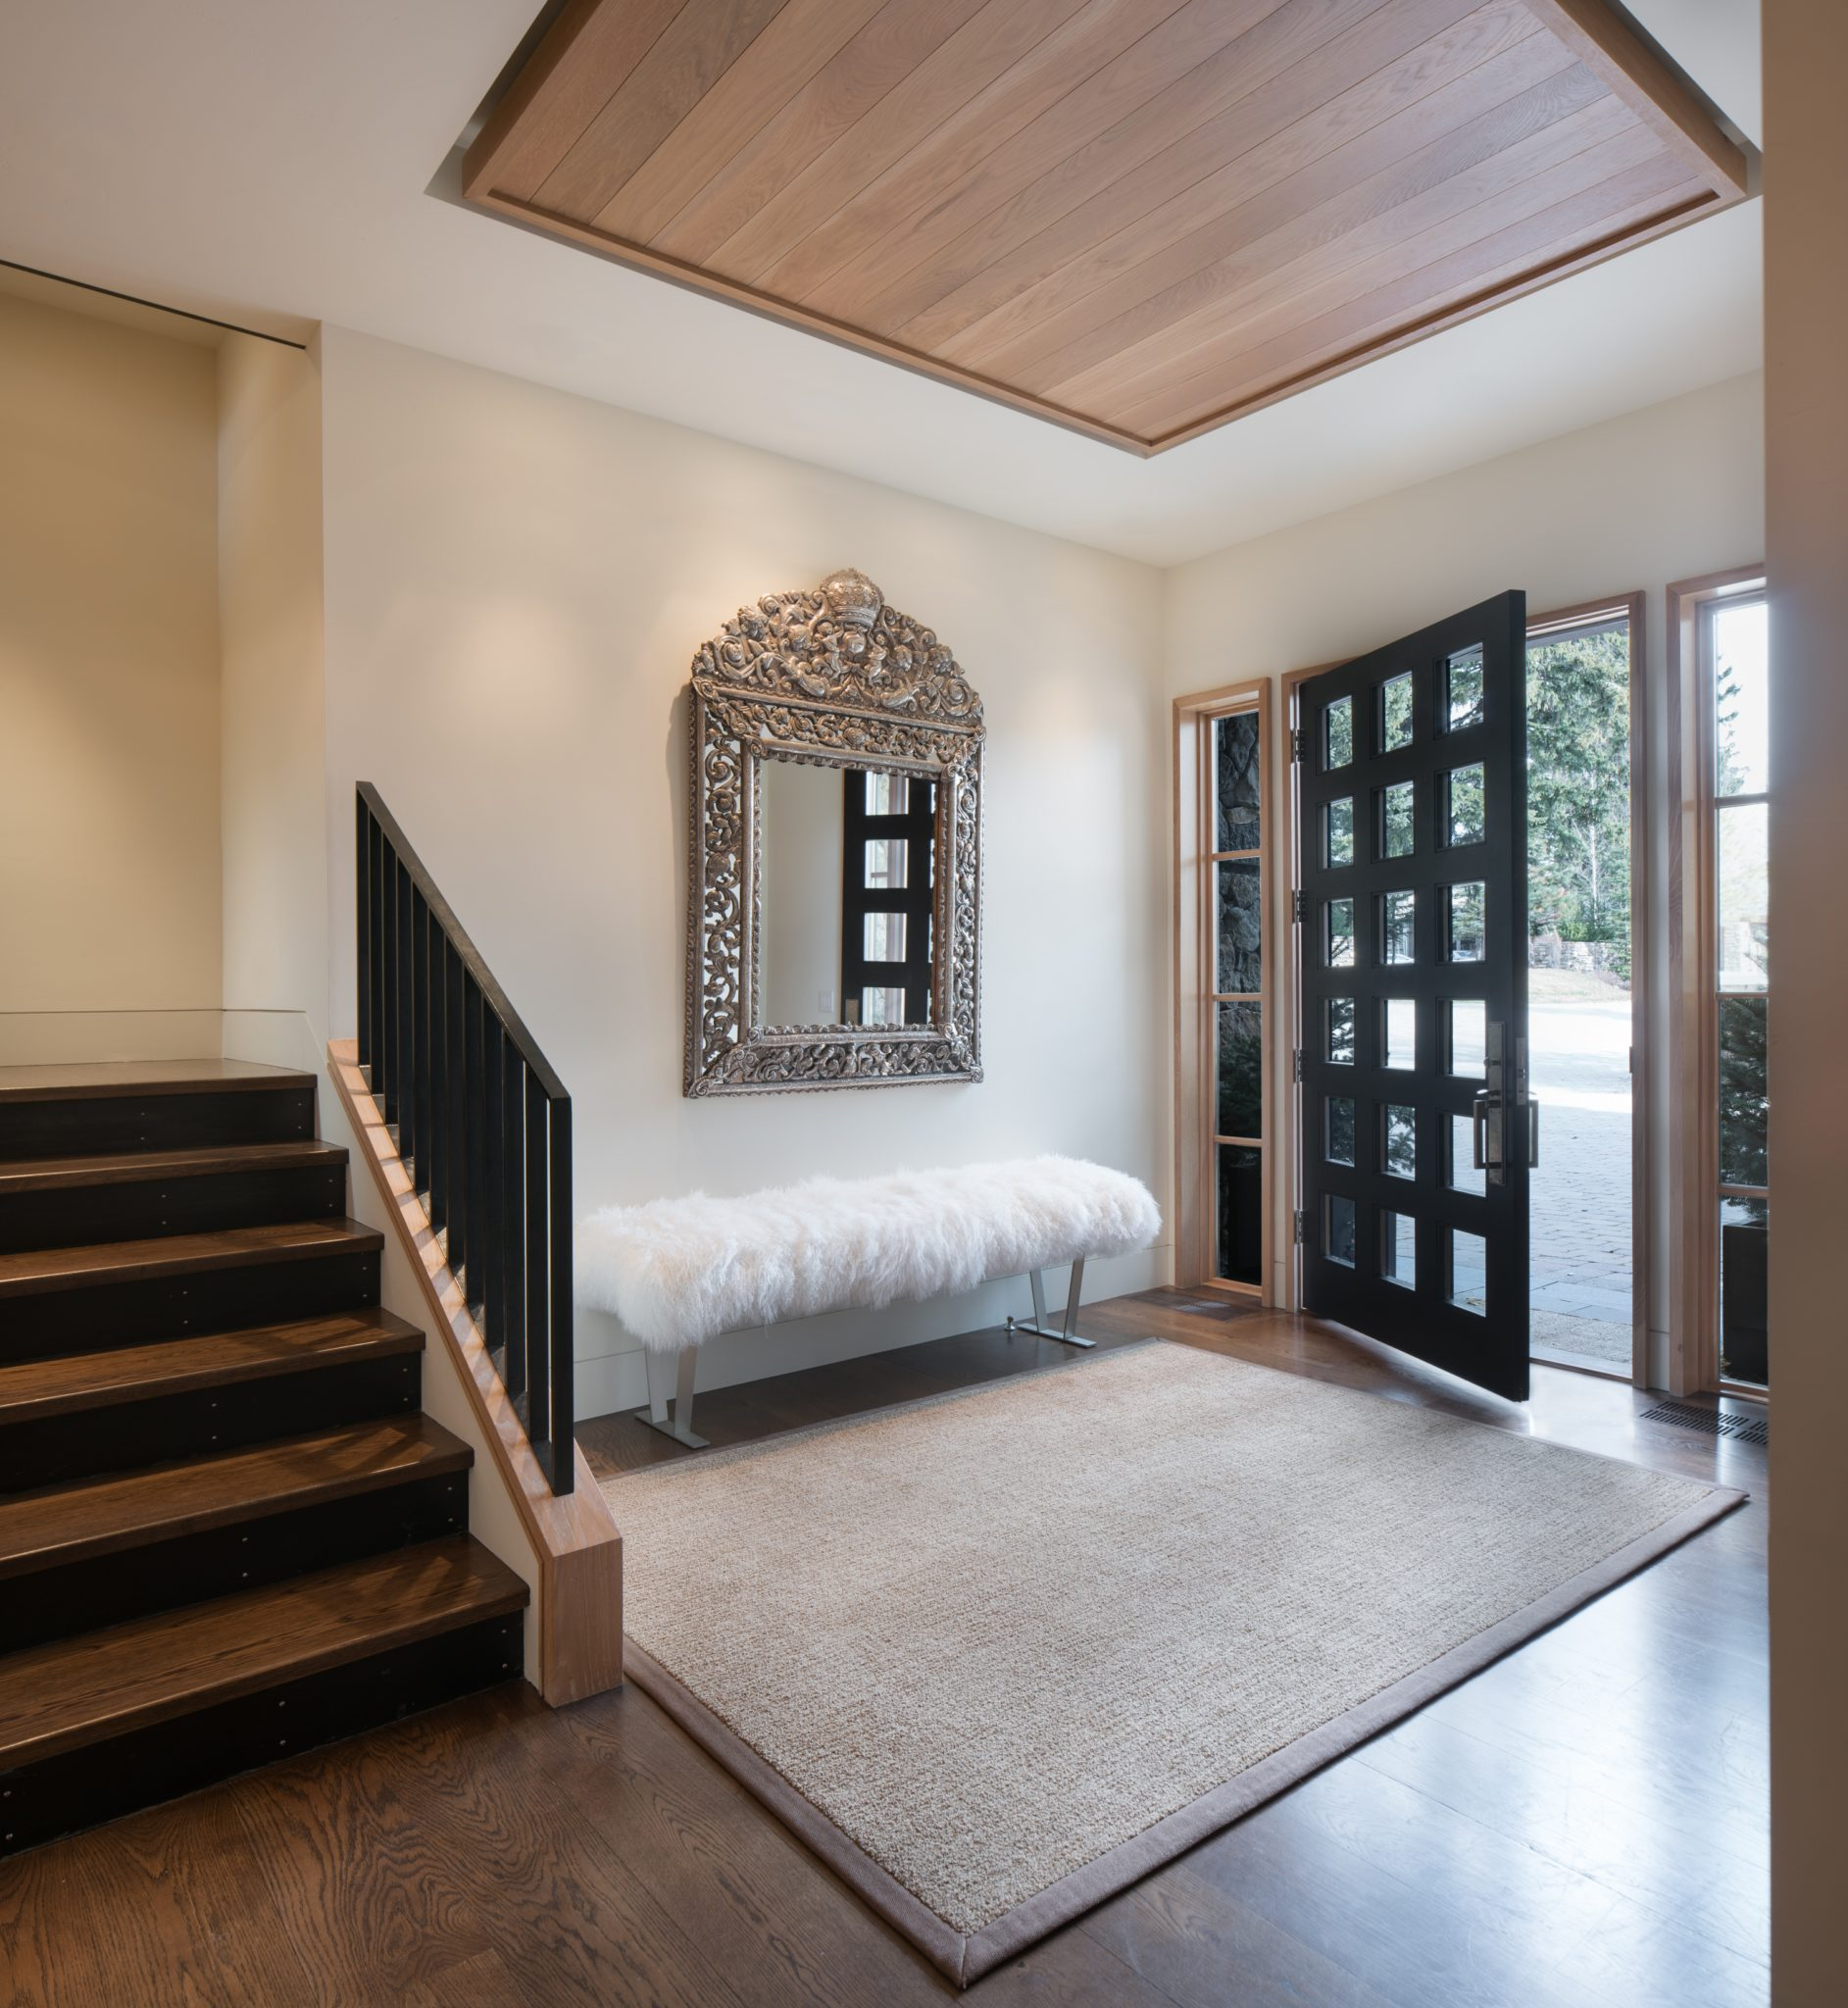 Contemporary mountain lodge entry with mongolian fur bench and Bolivian mirror by The Refined Group